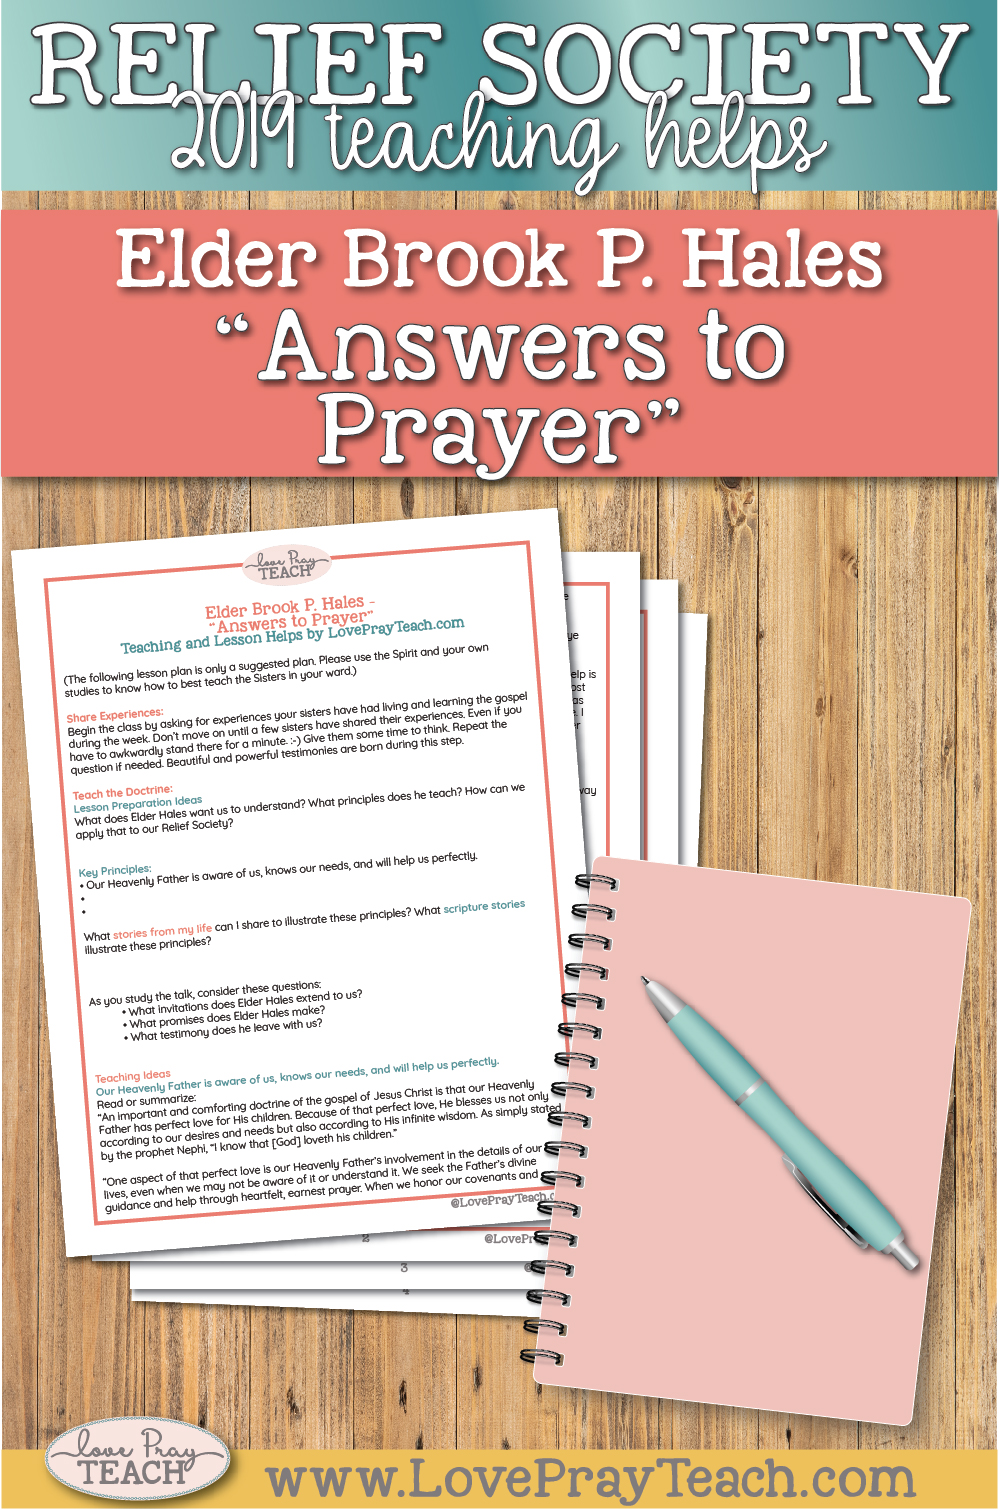 """Elder Brook P. Hales: """"Answers to Prayer"""" April 2019 General Conference Relief Society Teaching Helps"""